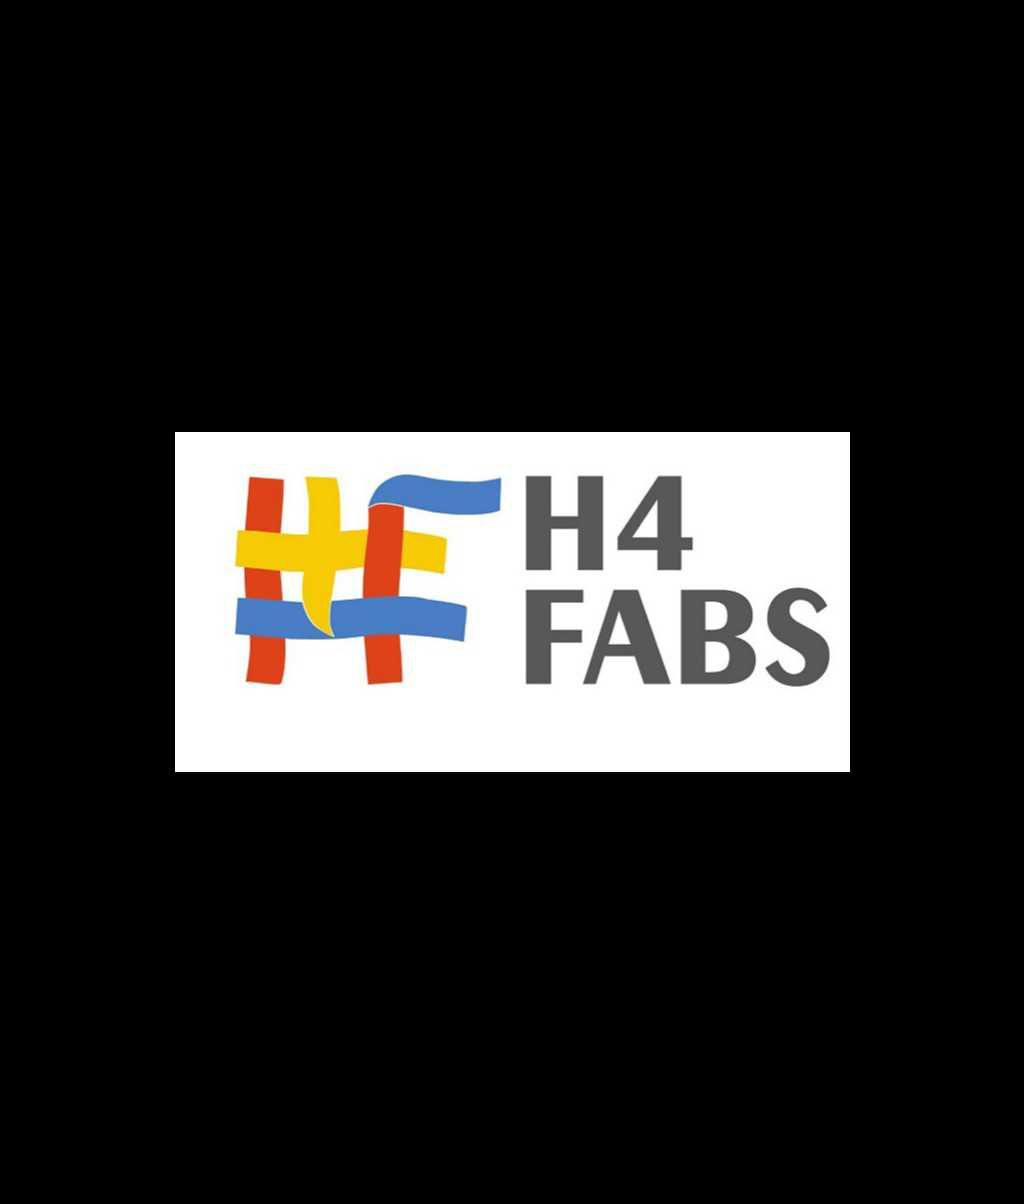 H4 FABS